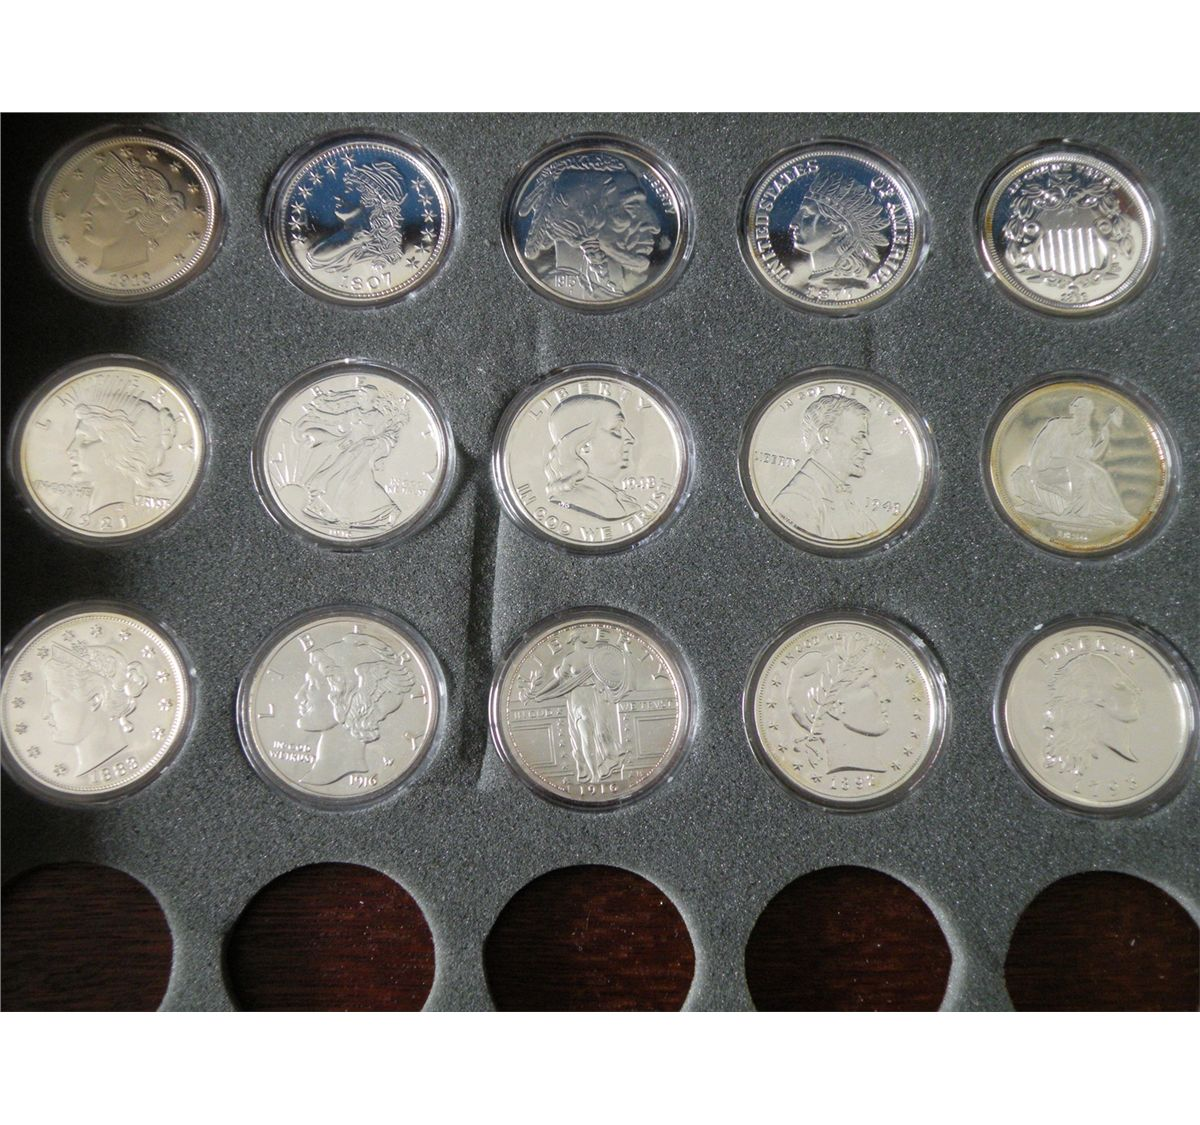 A Partial Set Of Oversized Apparently Silver Plated Us Coin Replicas In